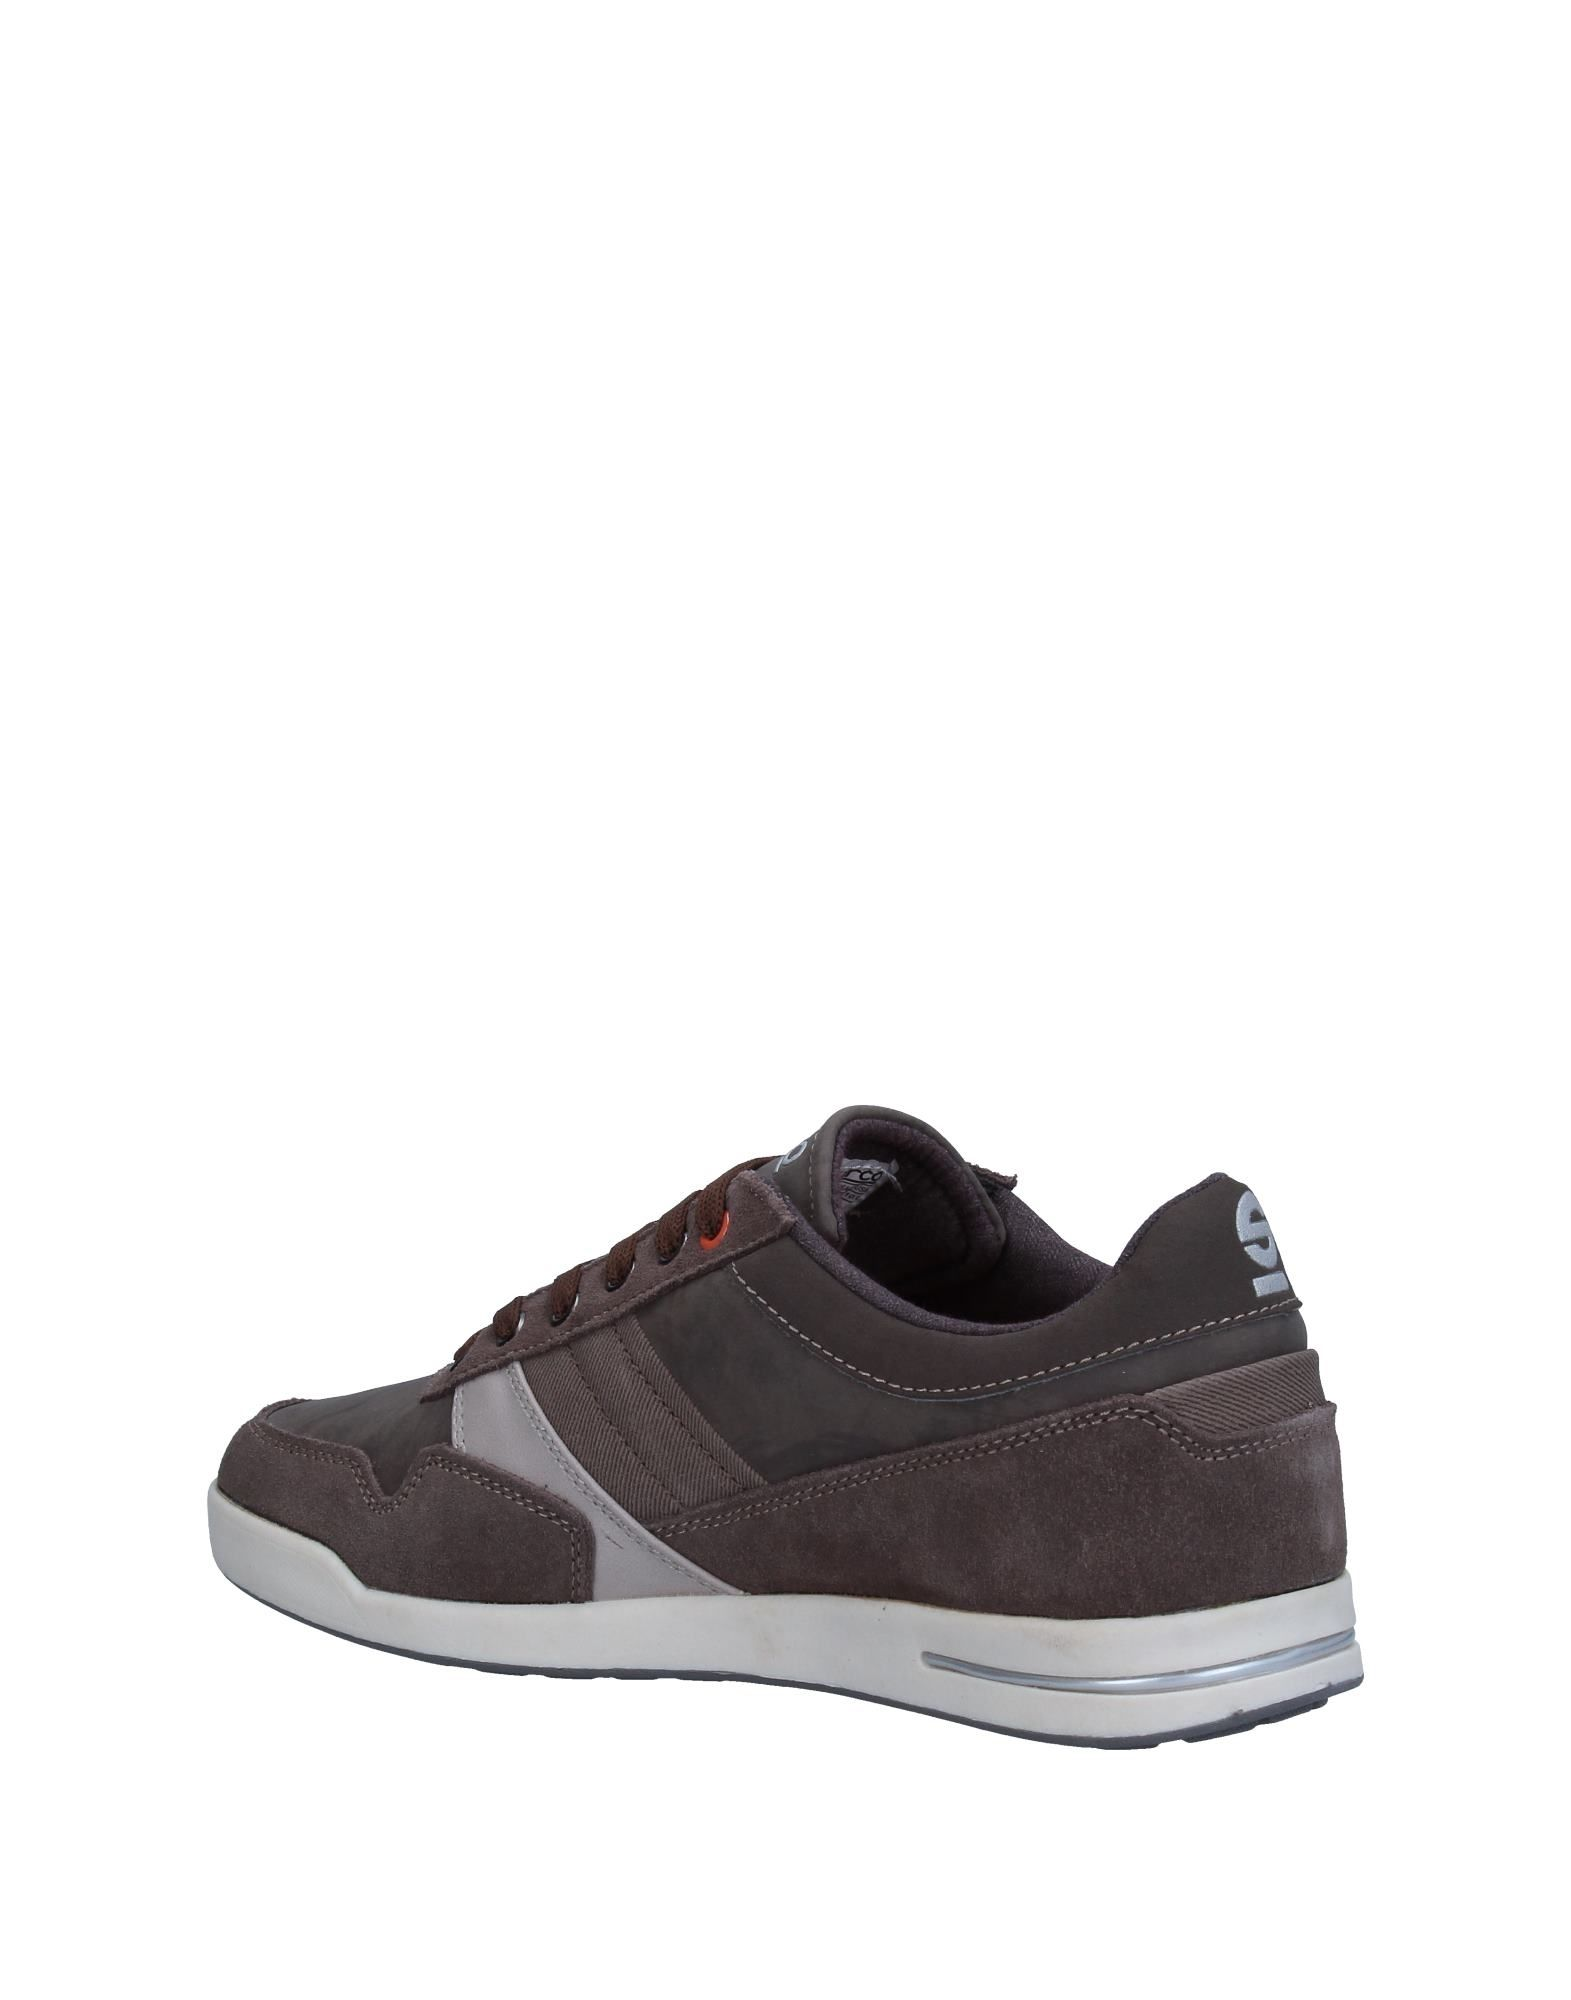 Sneakers Sparco Homme - Sneakers Sparco sur